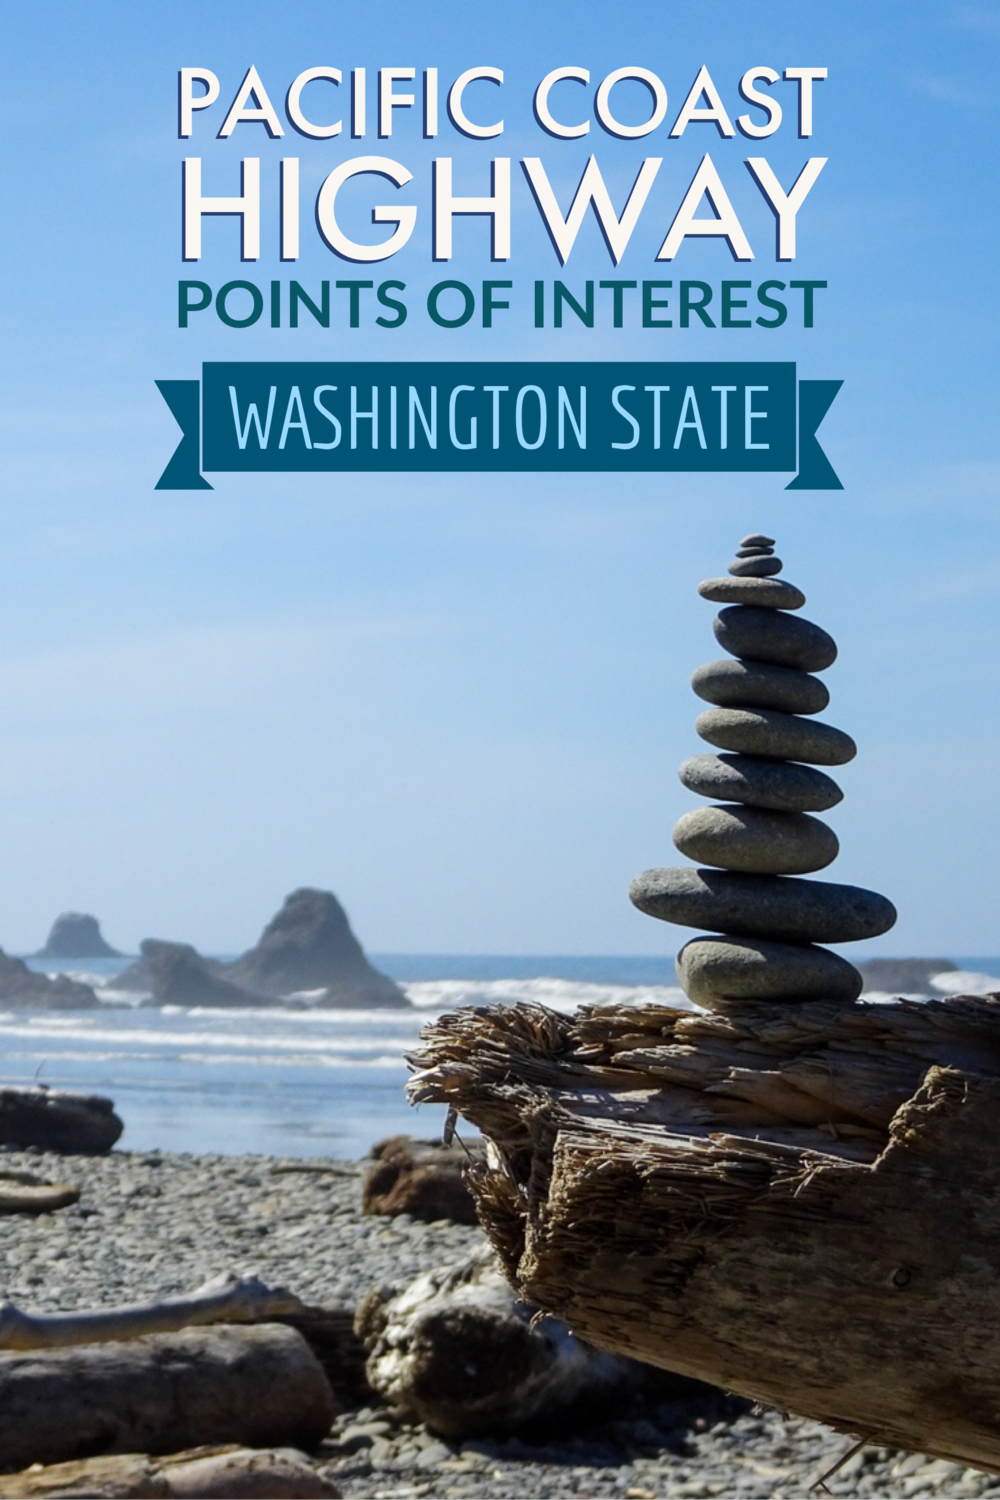 PacificCoastHighway_Washington_Pinterest.PNG